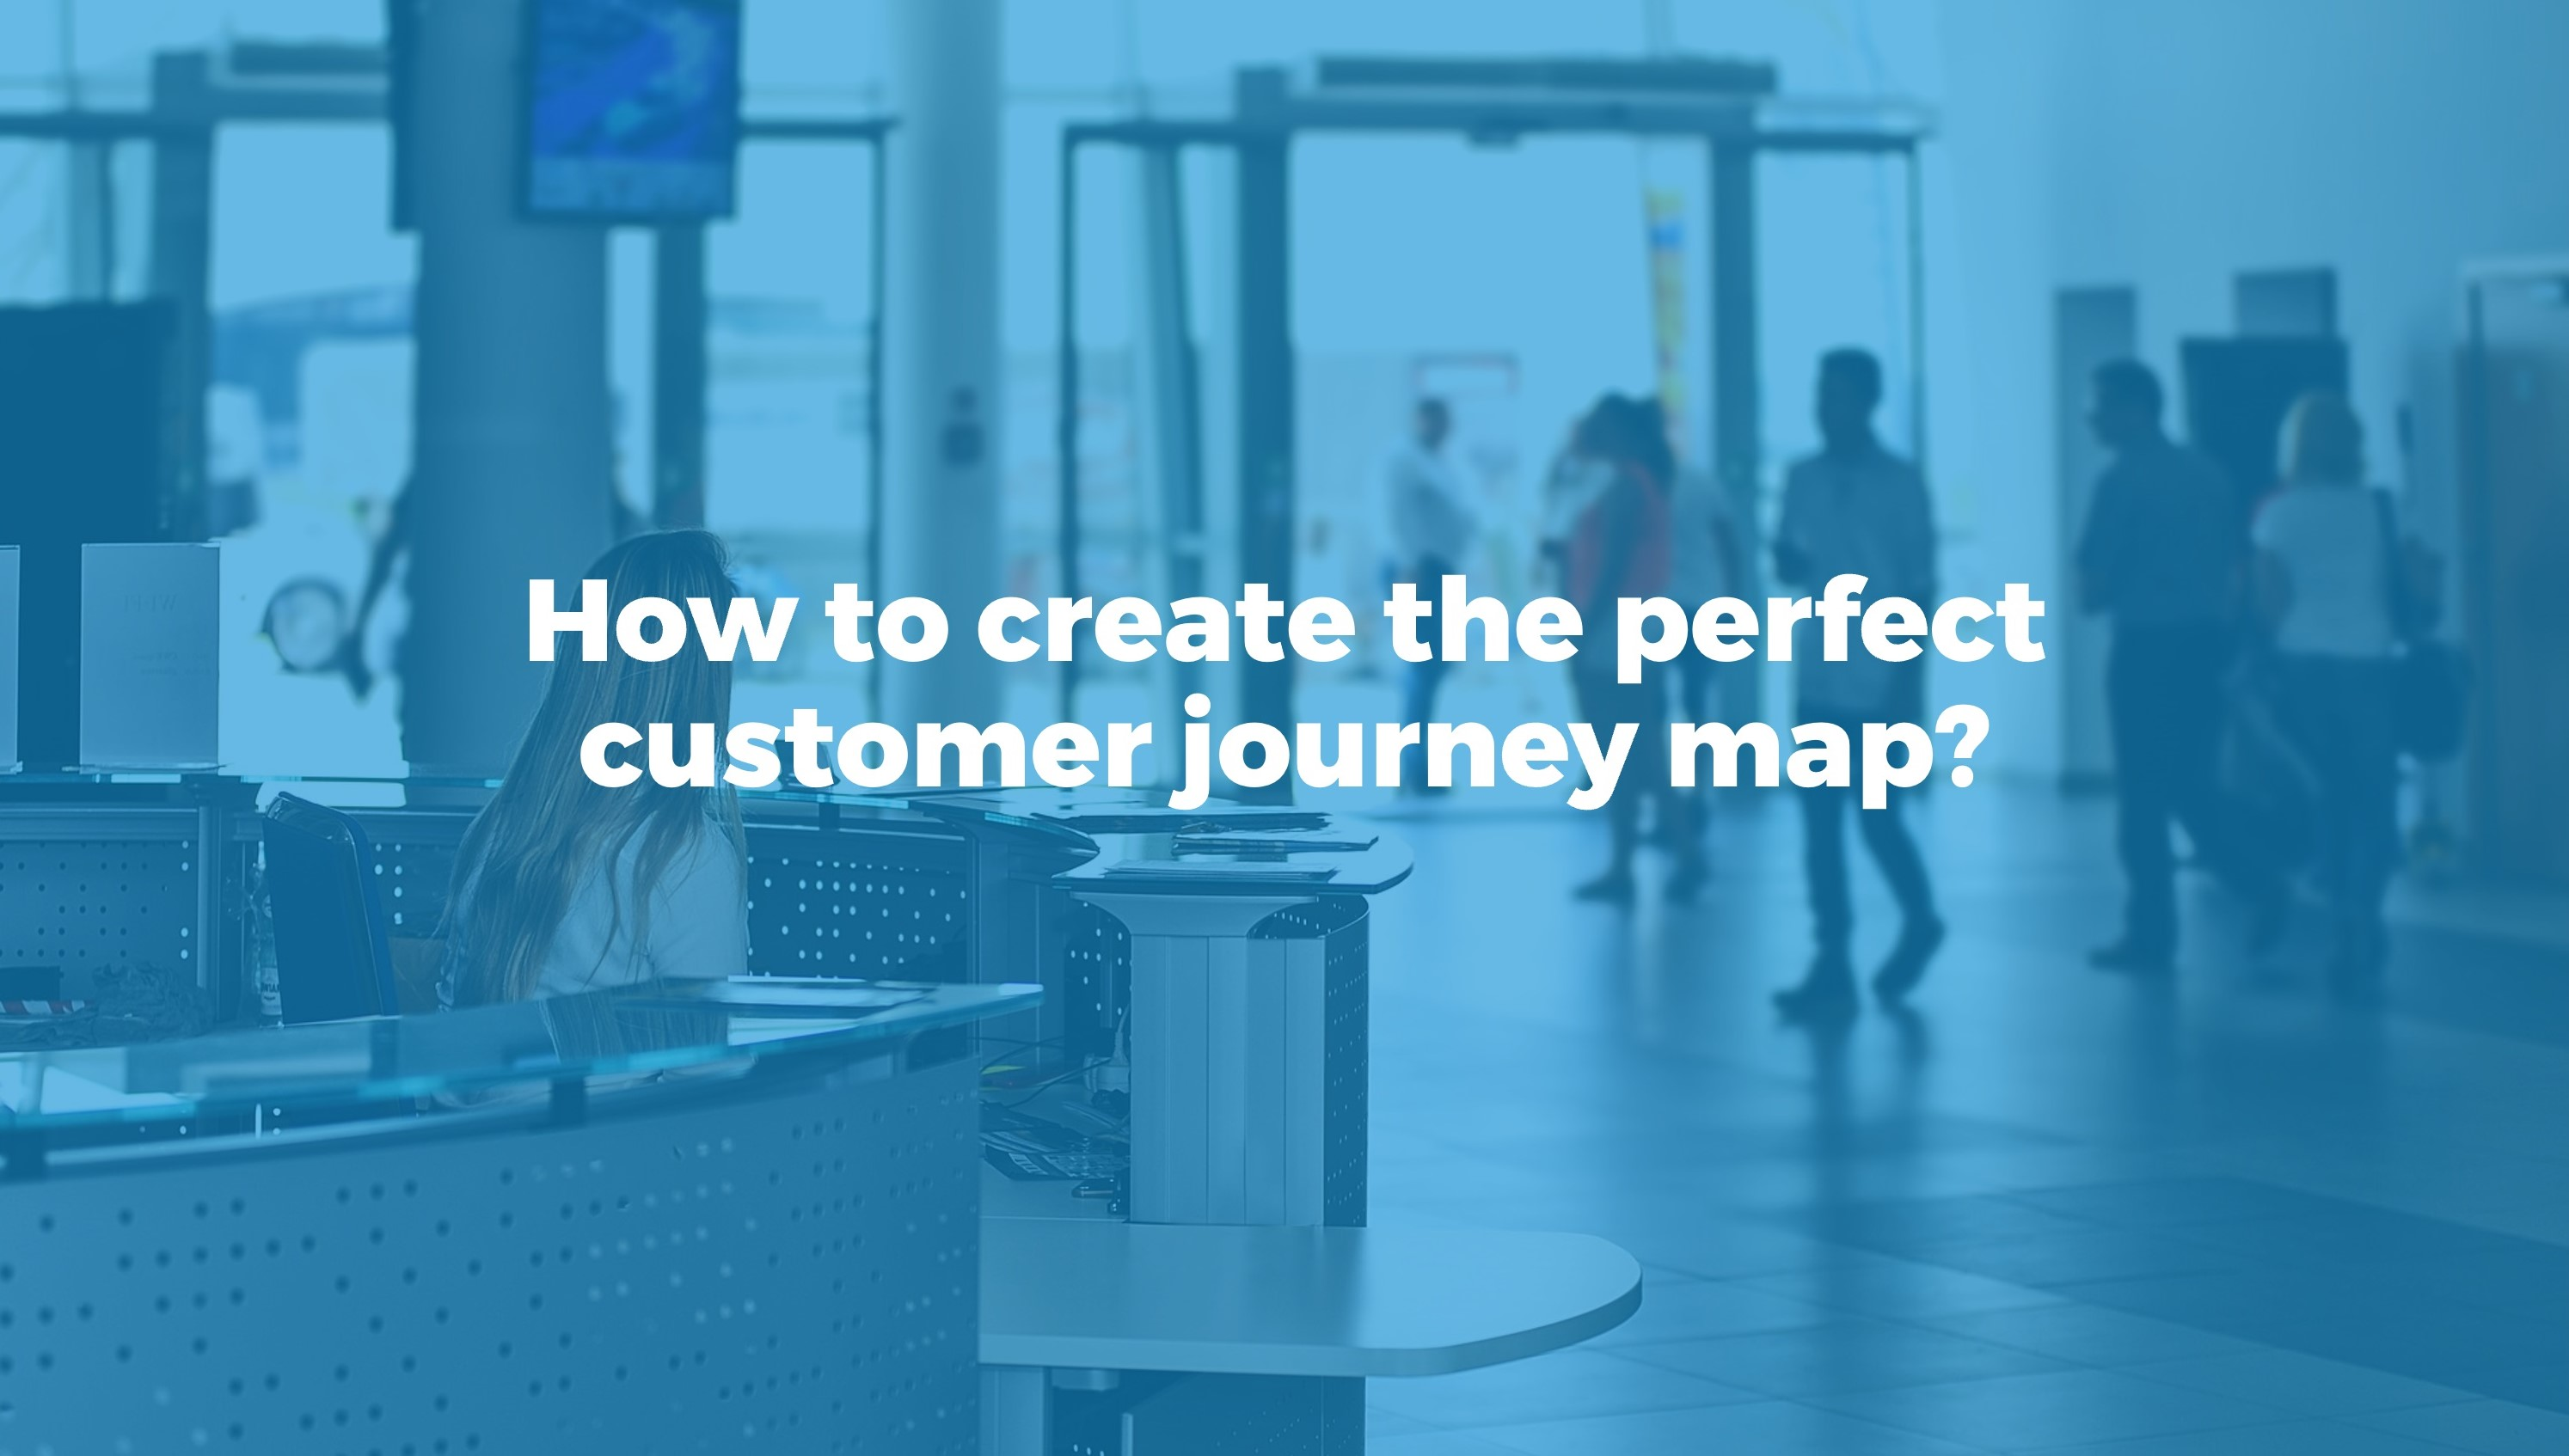 5 tips to create the ideal customer journey map